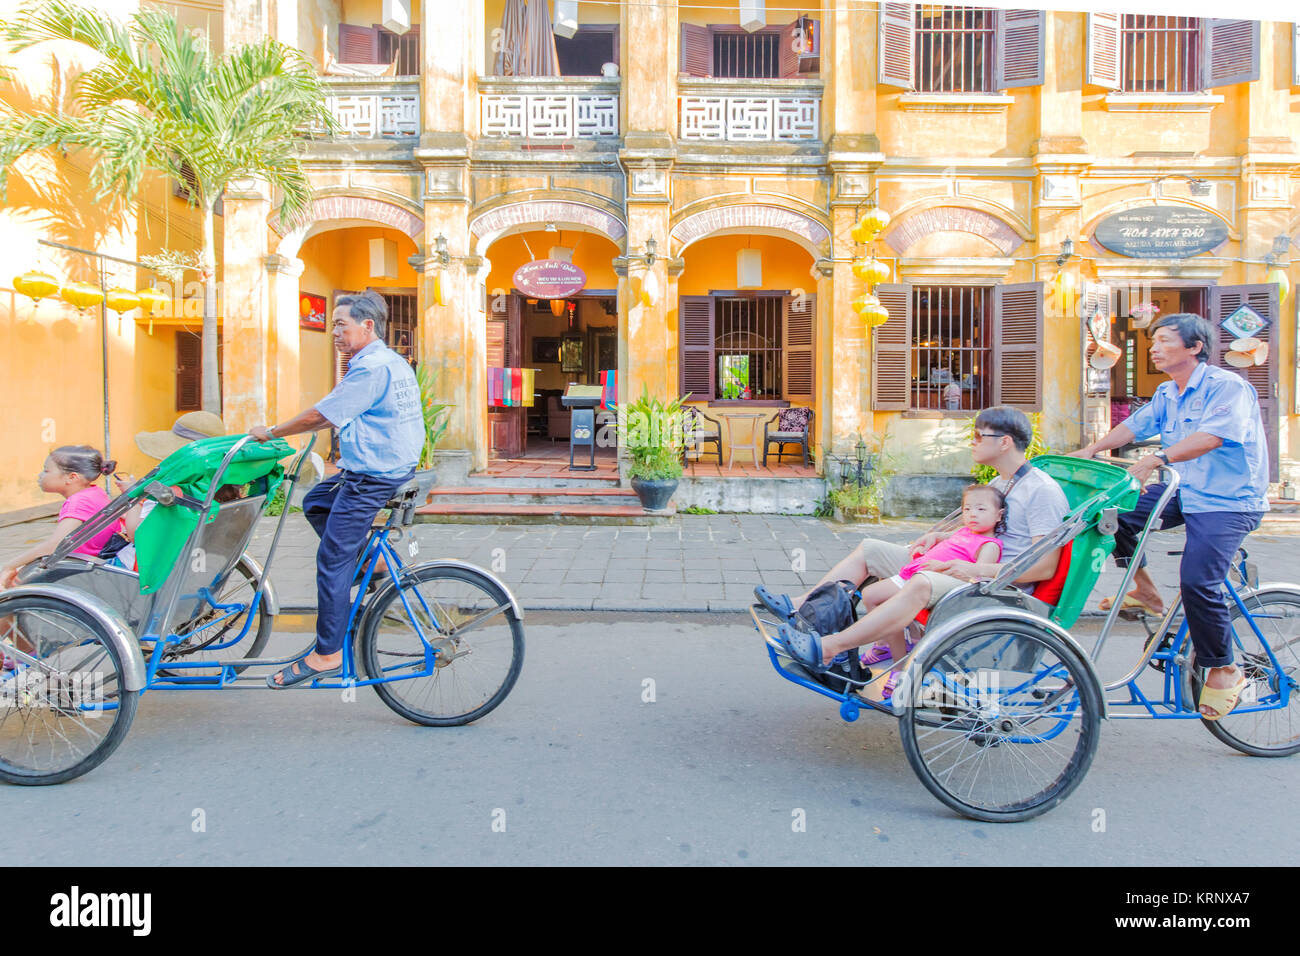 Cyclo in Hoi An, Vietnam - Stock Image